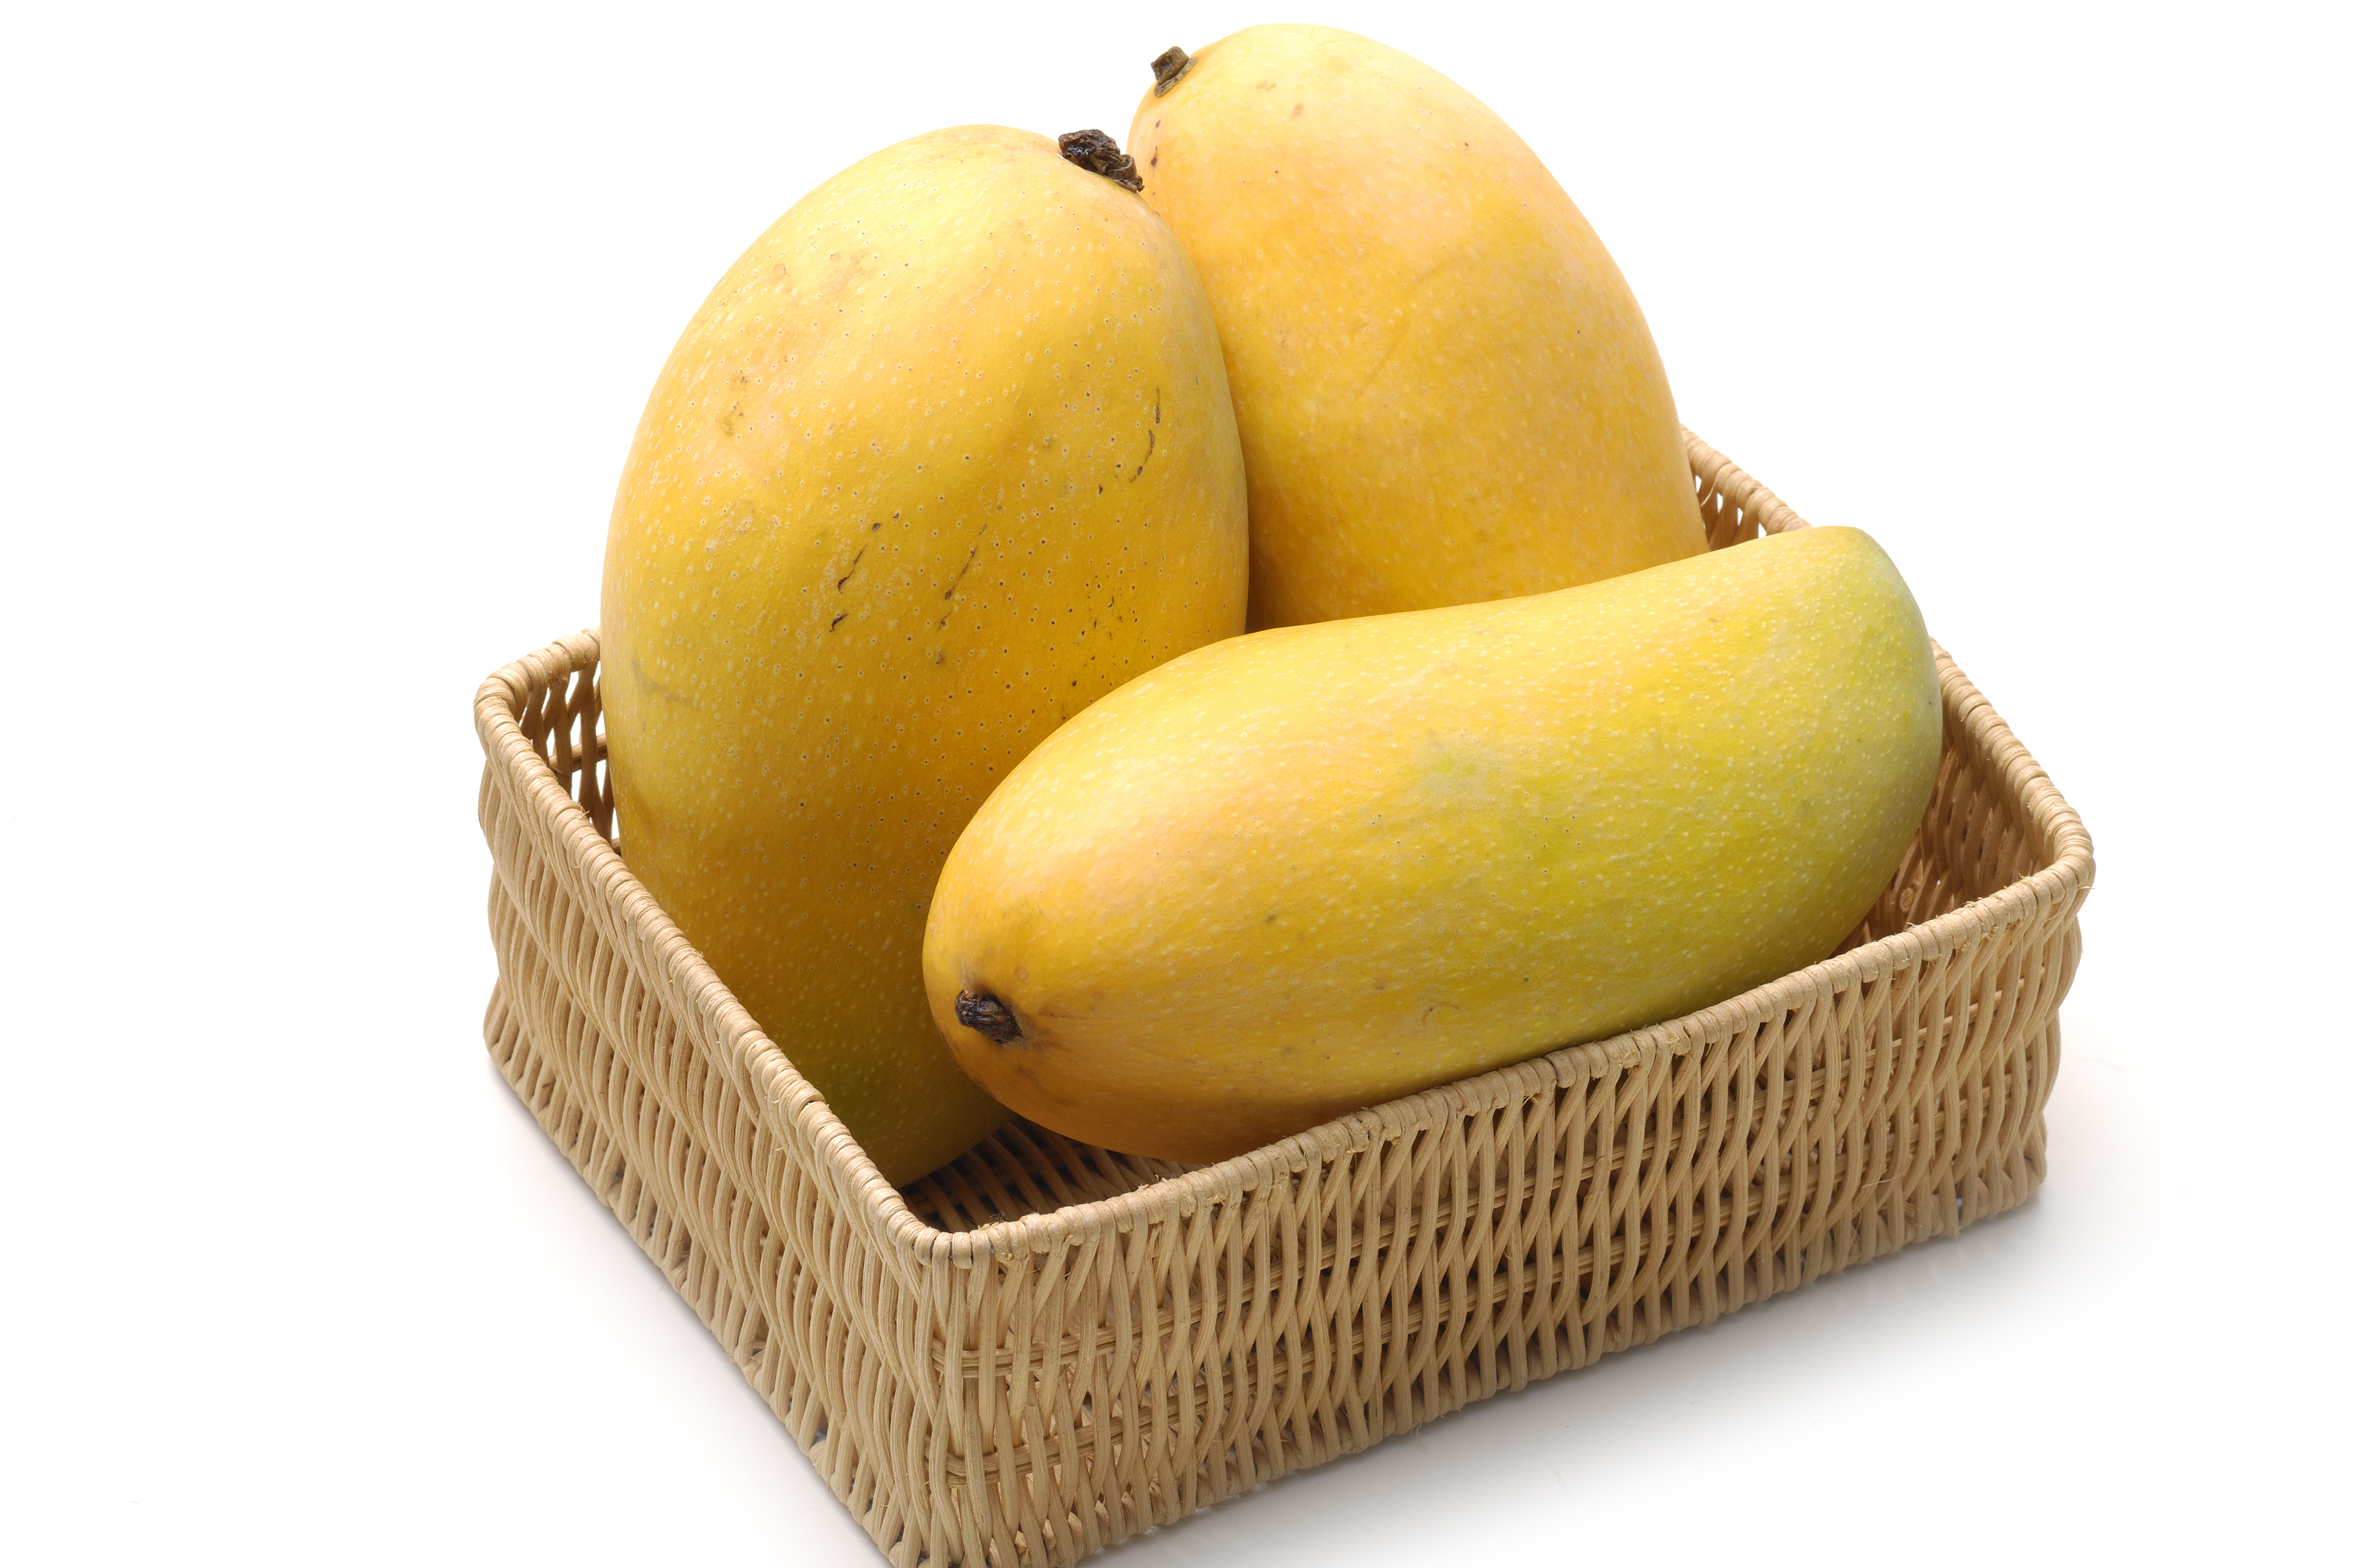 Ataulfo Mangoes Arrive at Harry & David in June! Get 'em While You Can.